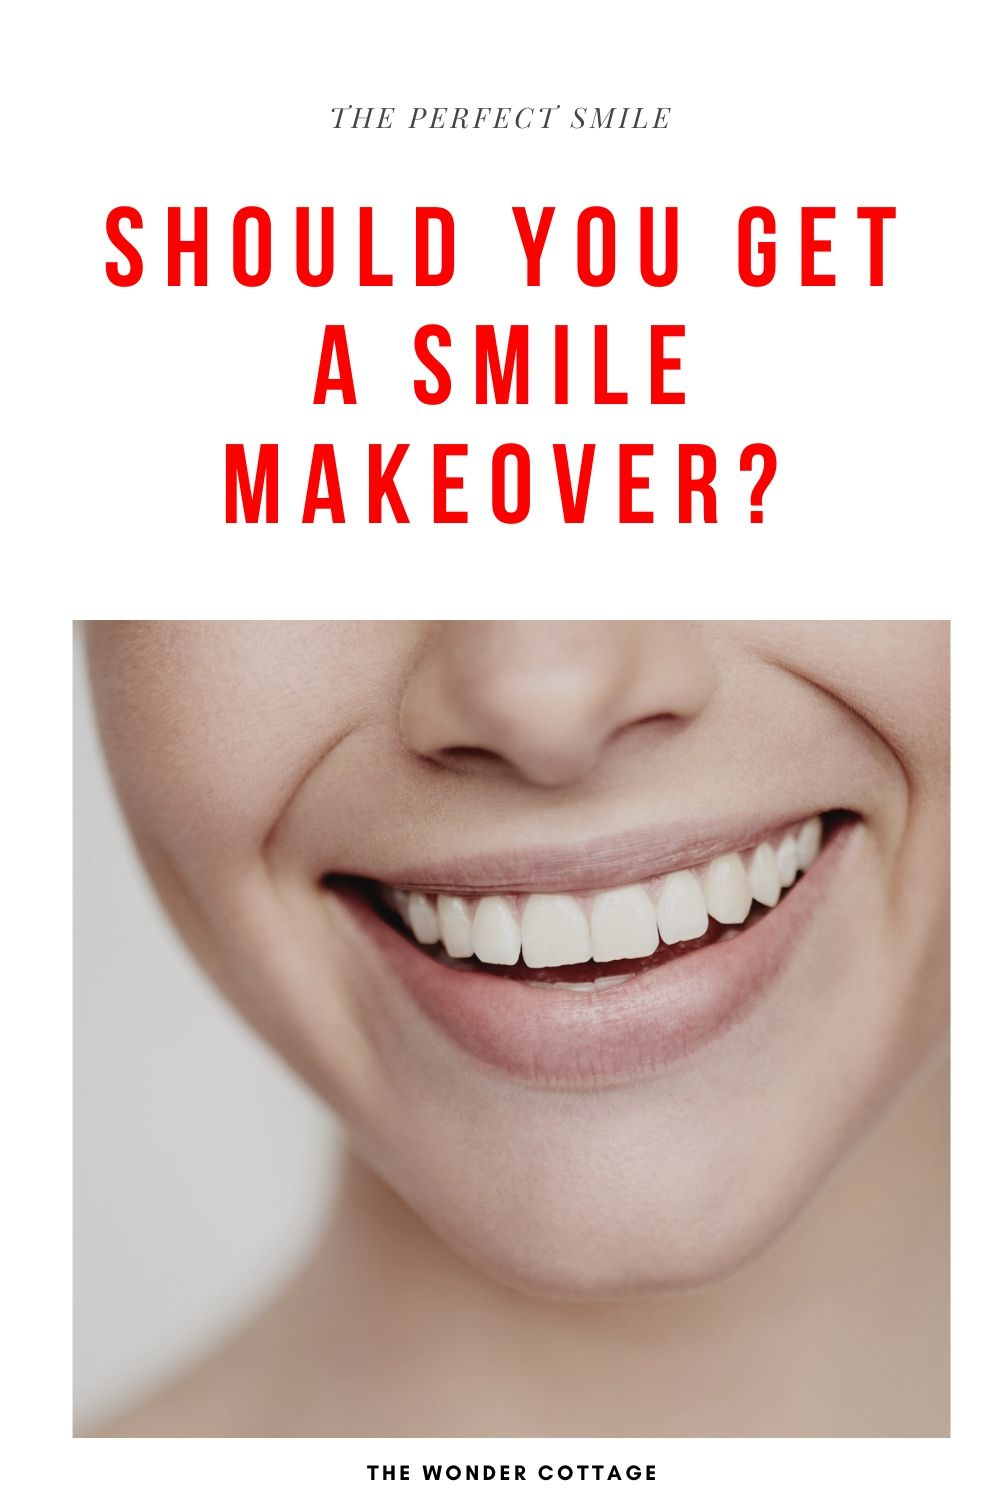 should you get a smile makeover